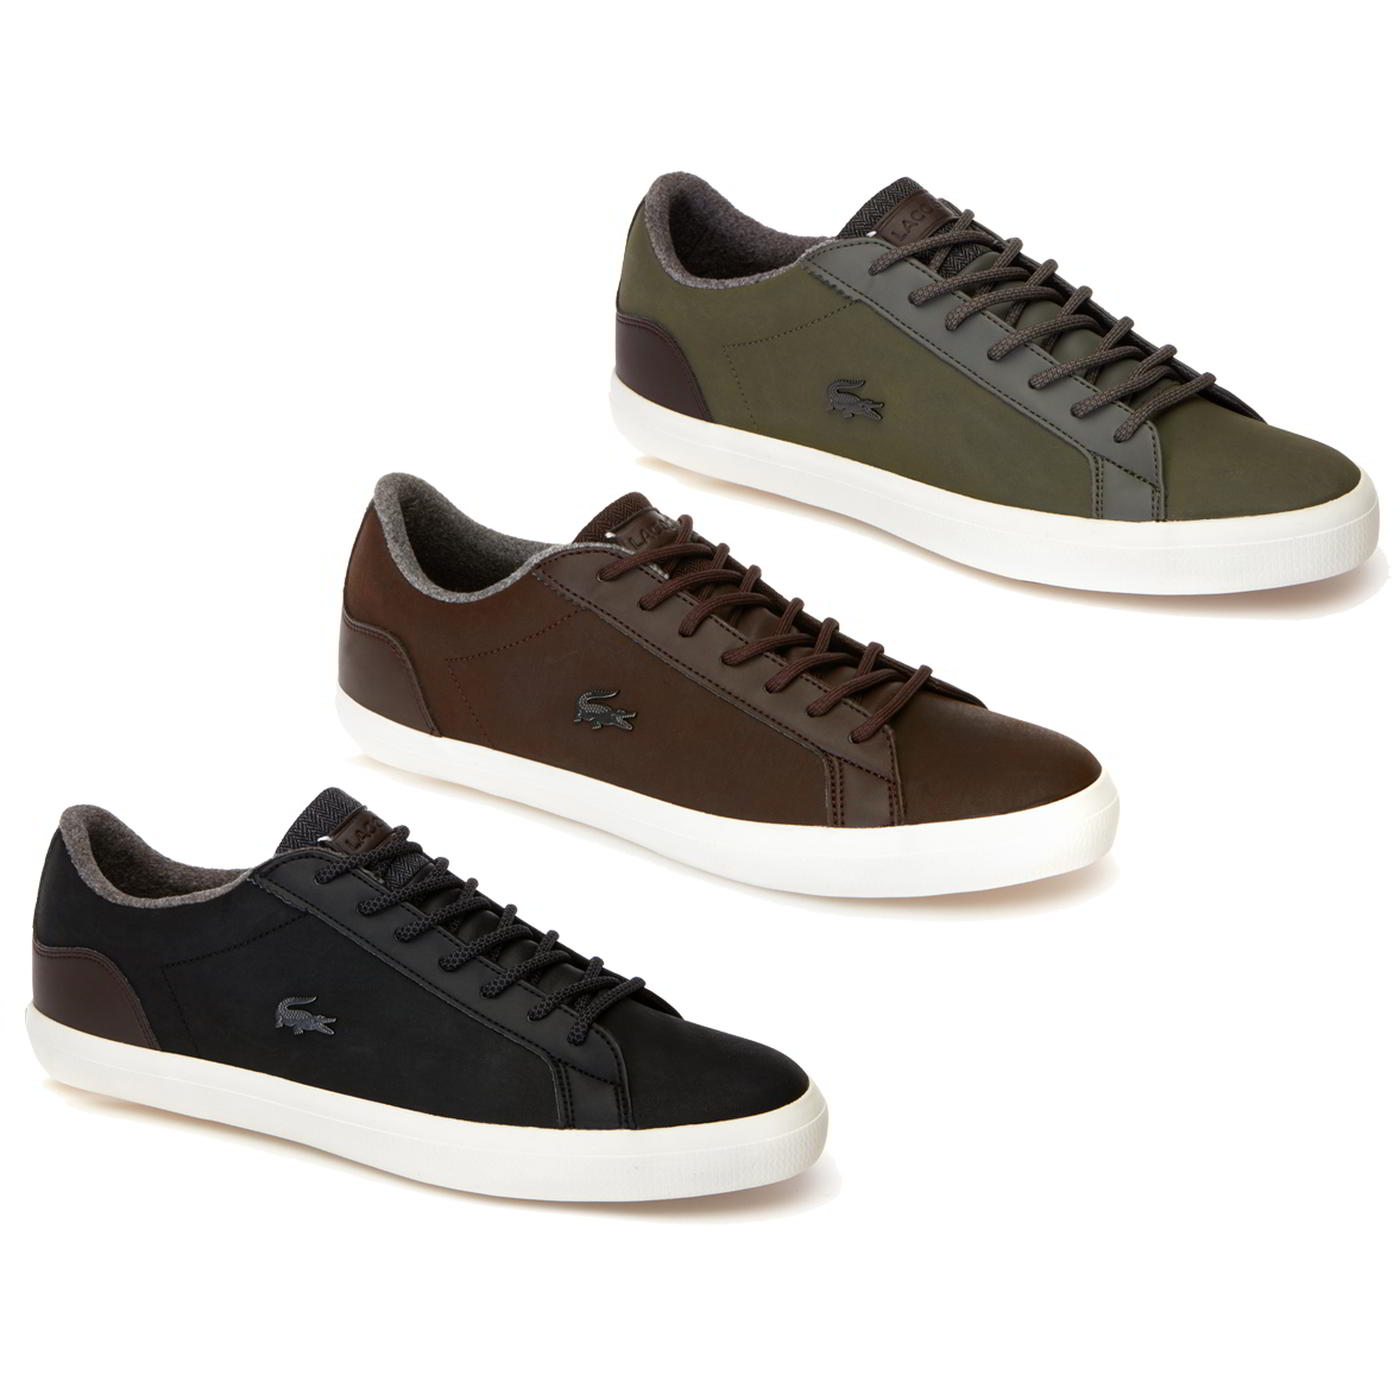 2dd103e847344 Details about Lacoste Lerond Mens Black Brown Green Leather Winter Warm Trainers  Shoes